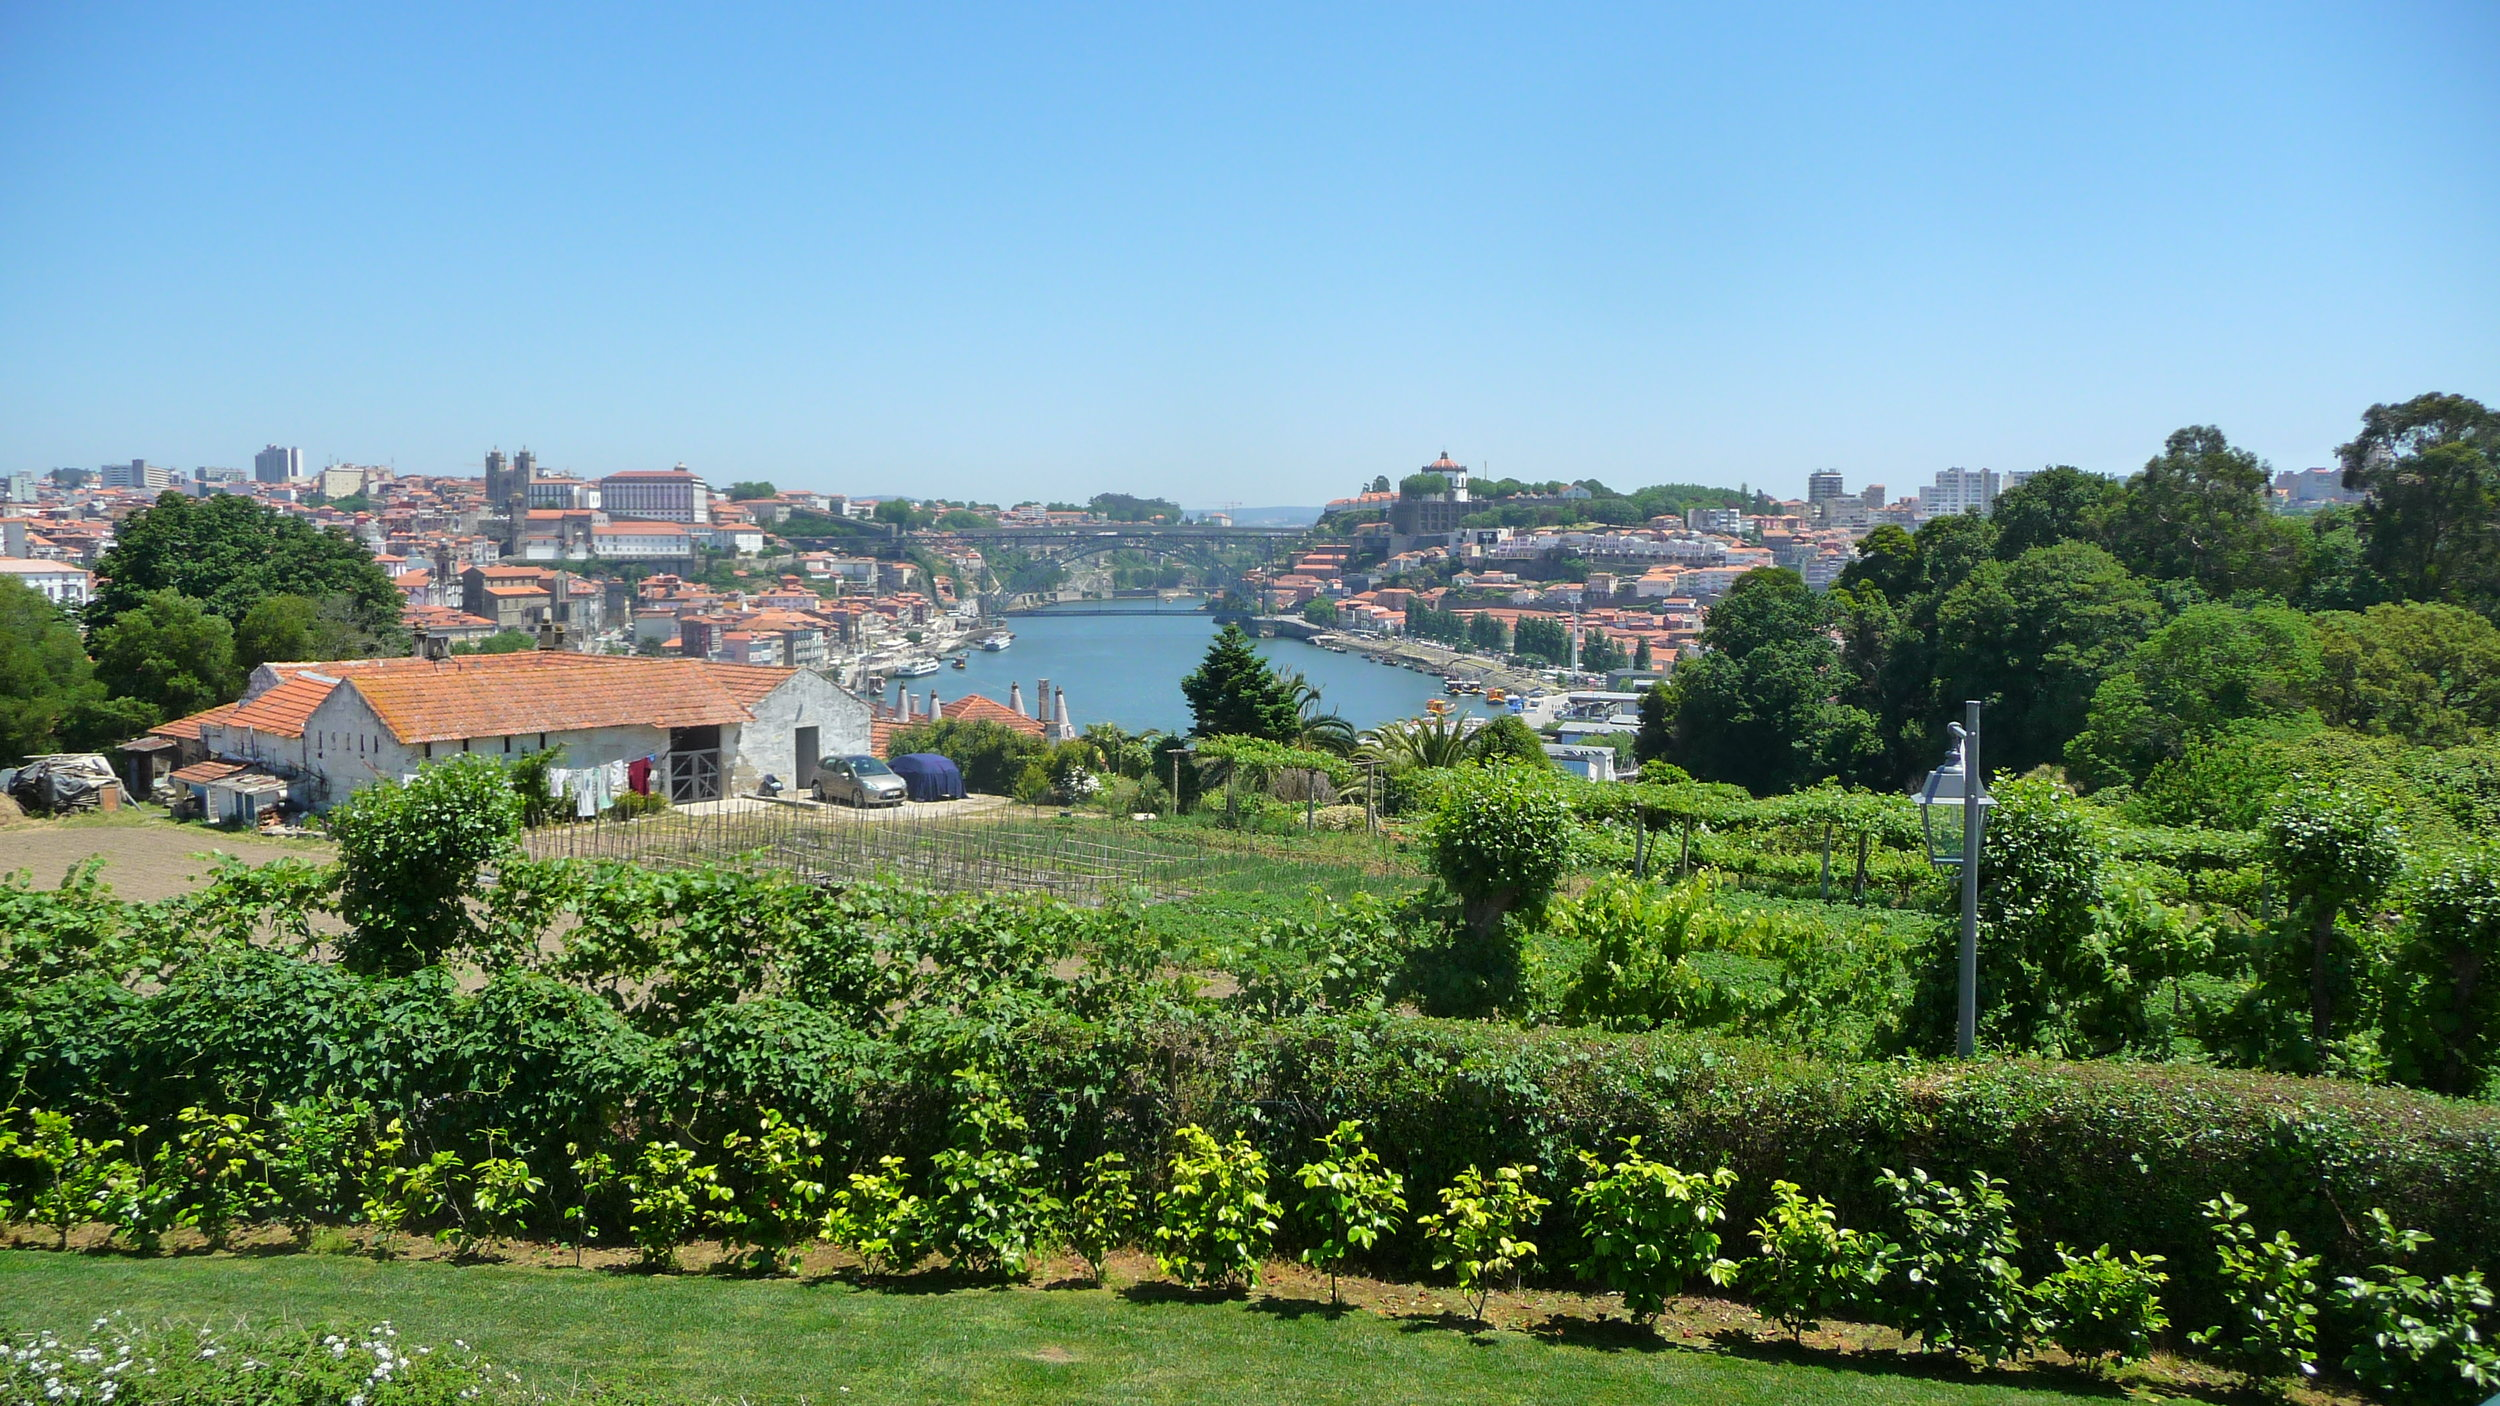 As the last lodge in the line up, Graham's affords sweeping views of Vila de Gaia to the right and Porto, Portugal to the left separated by the Douro River. Viki Eierdam